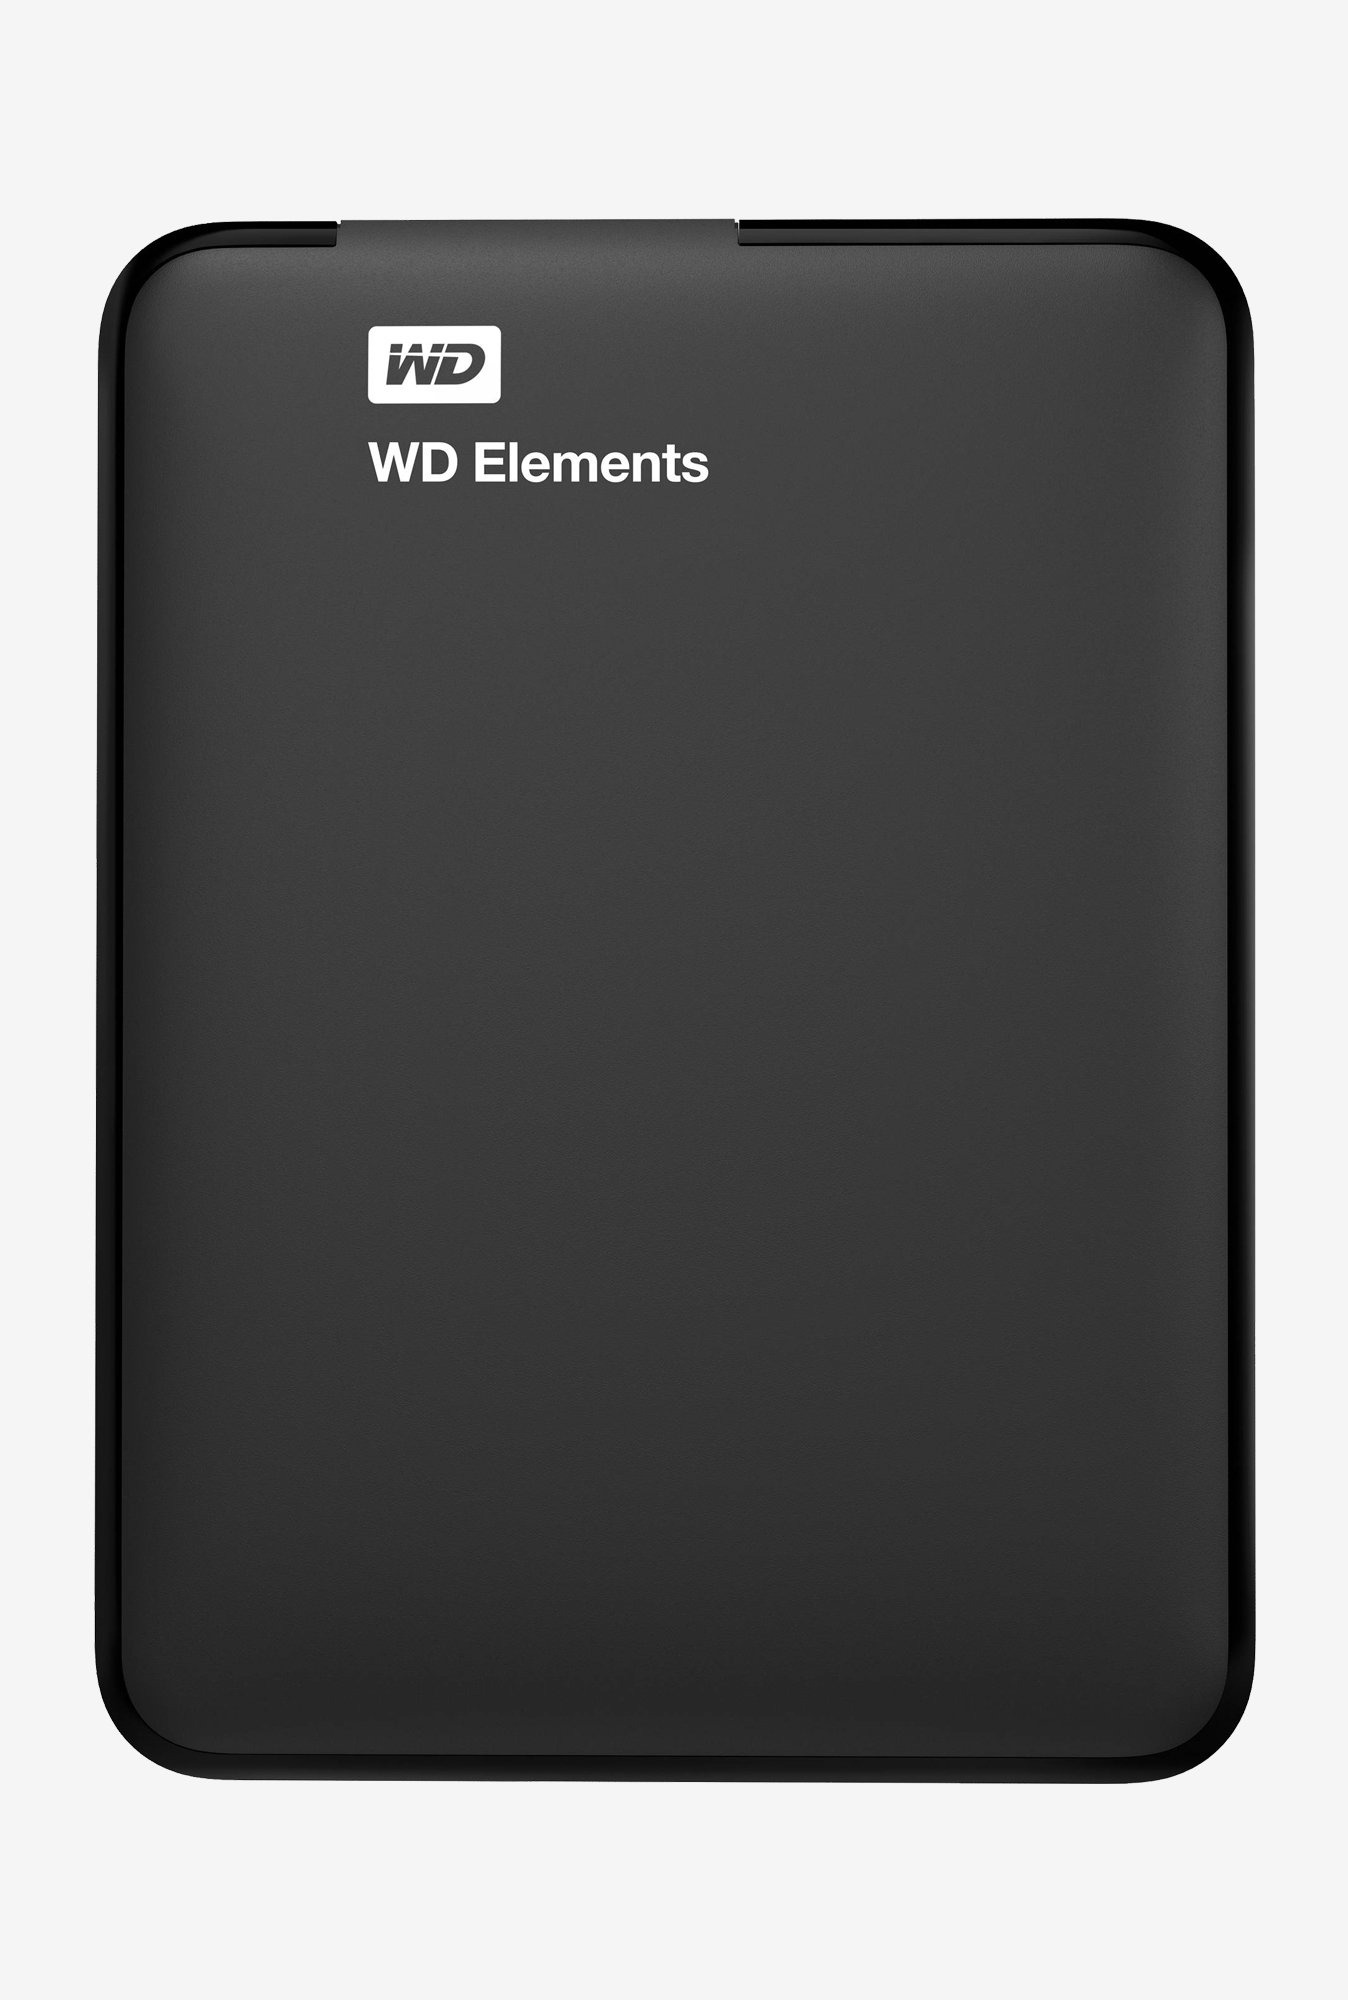 WD Elements WDBPCK0010BBK 1 TB Hard Disk Black